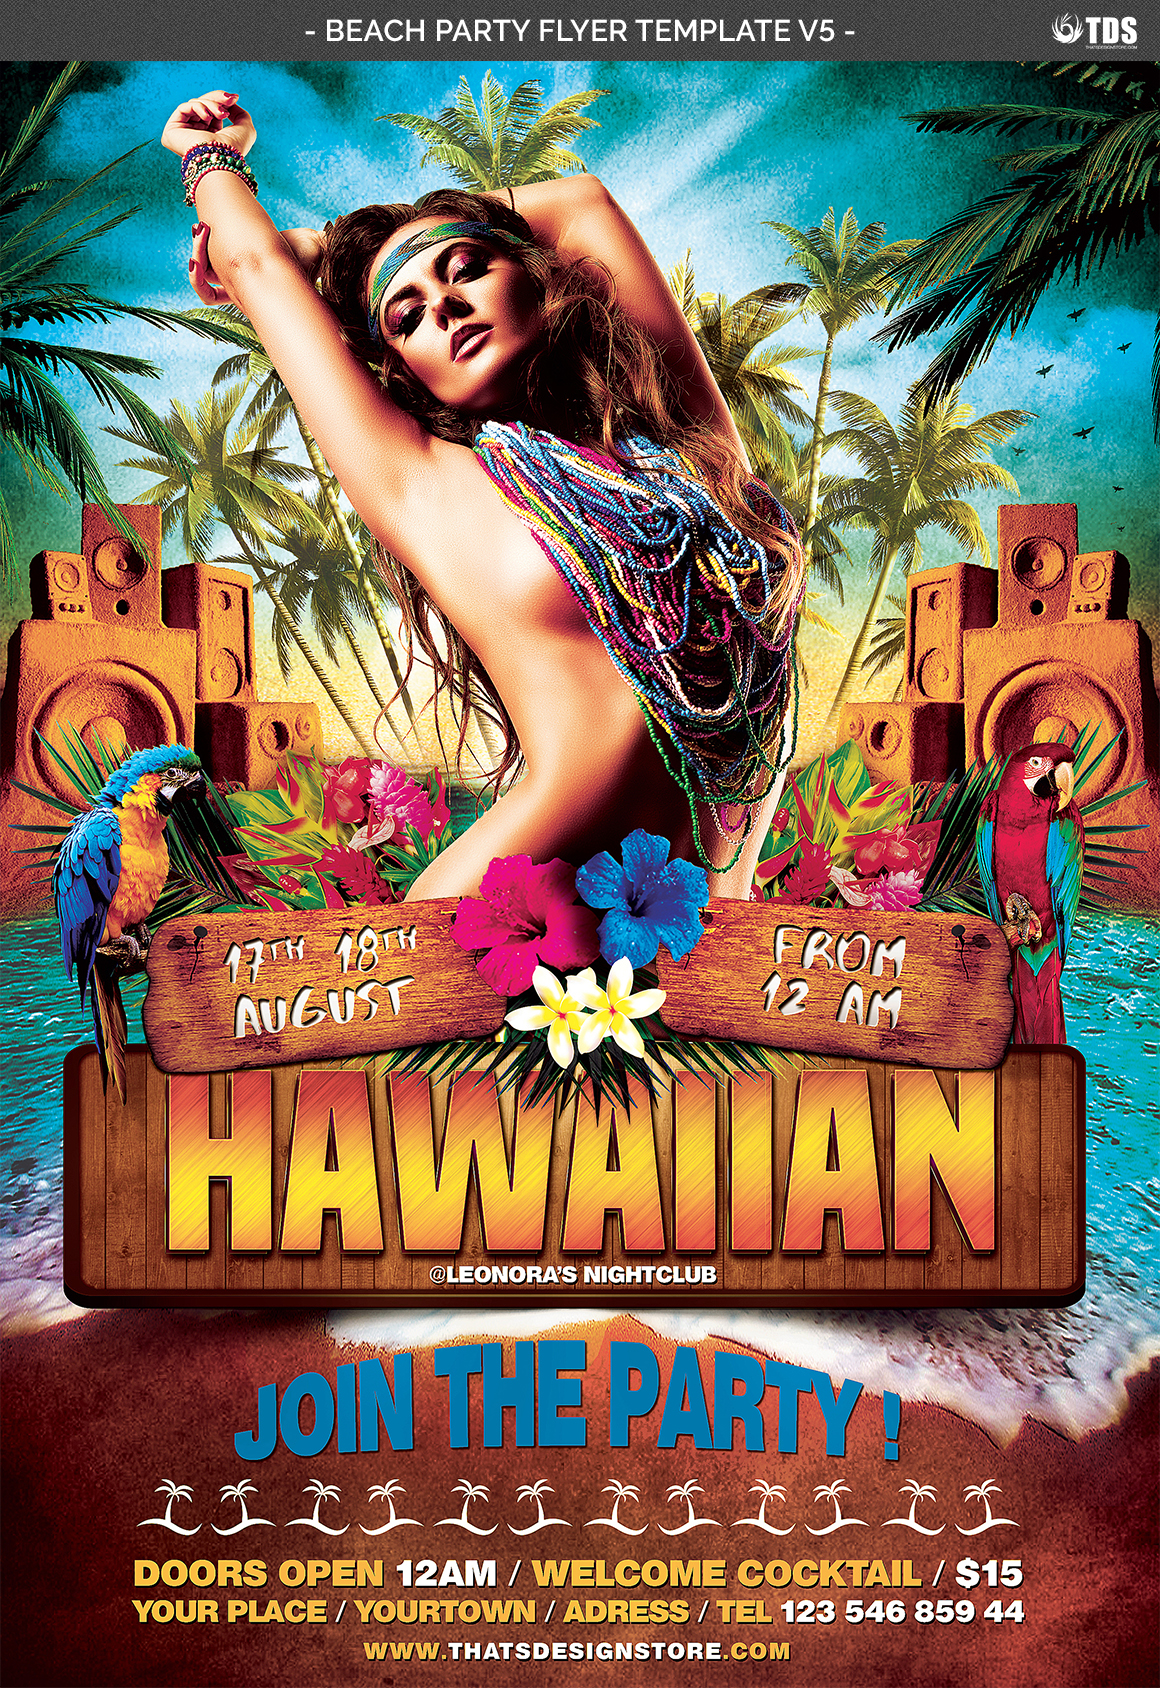 Beach Party Flyer Template V5 example image 4